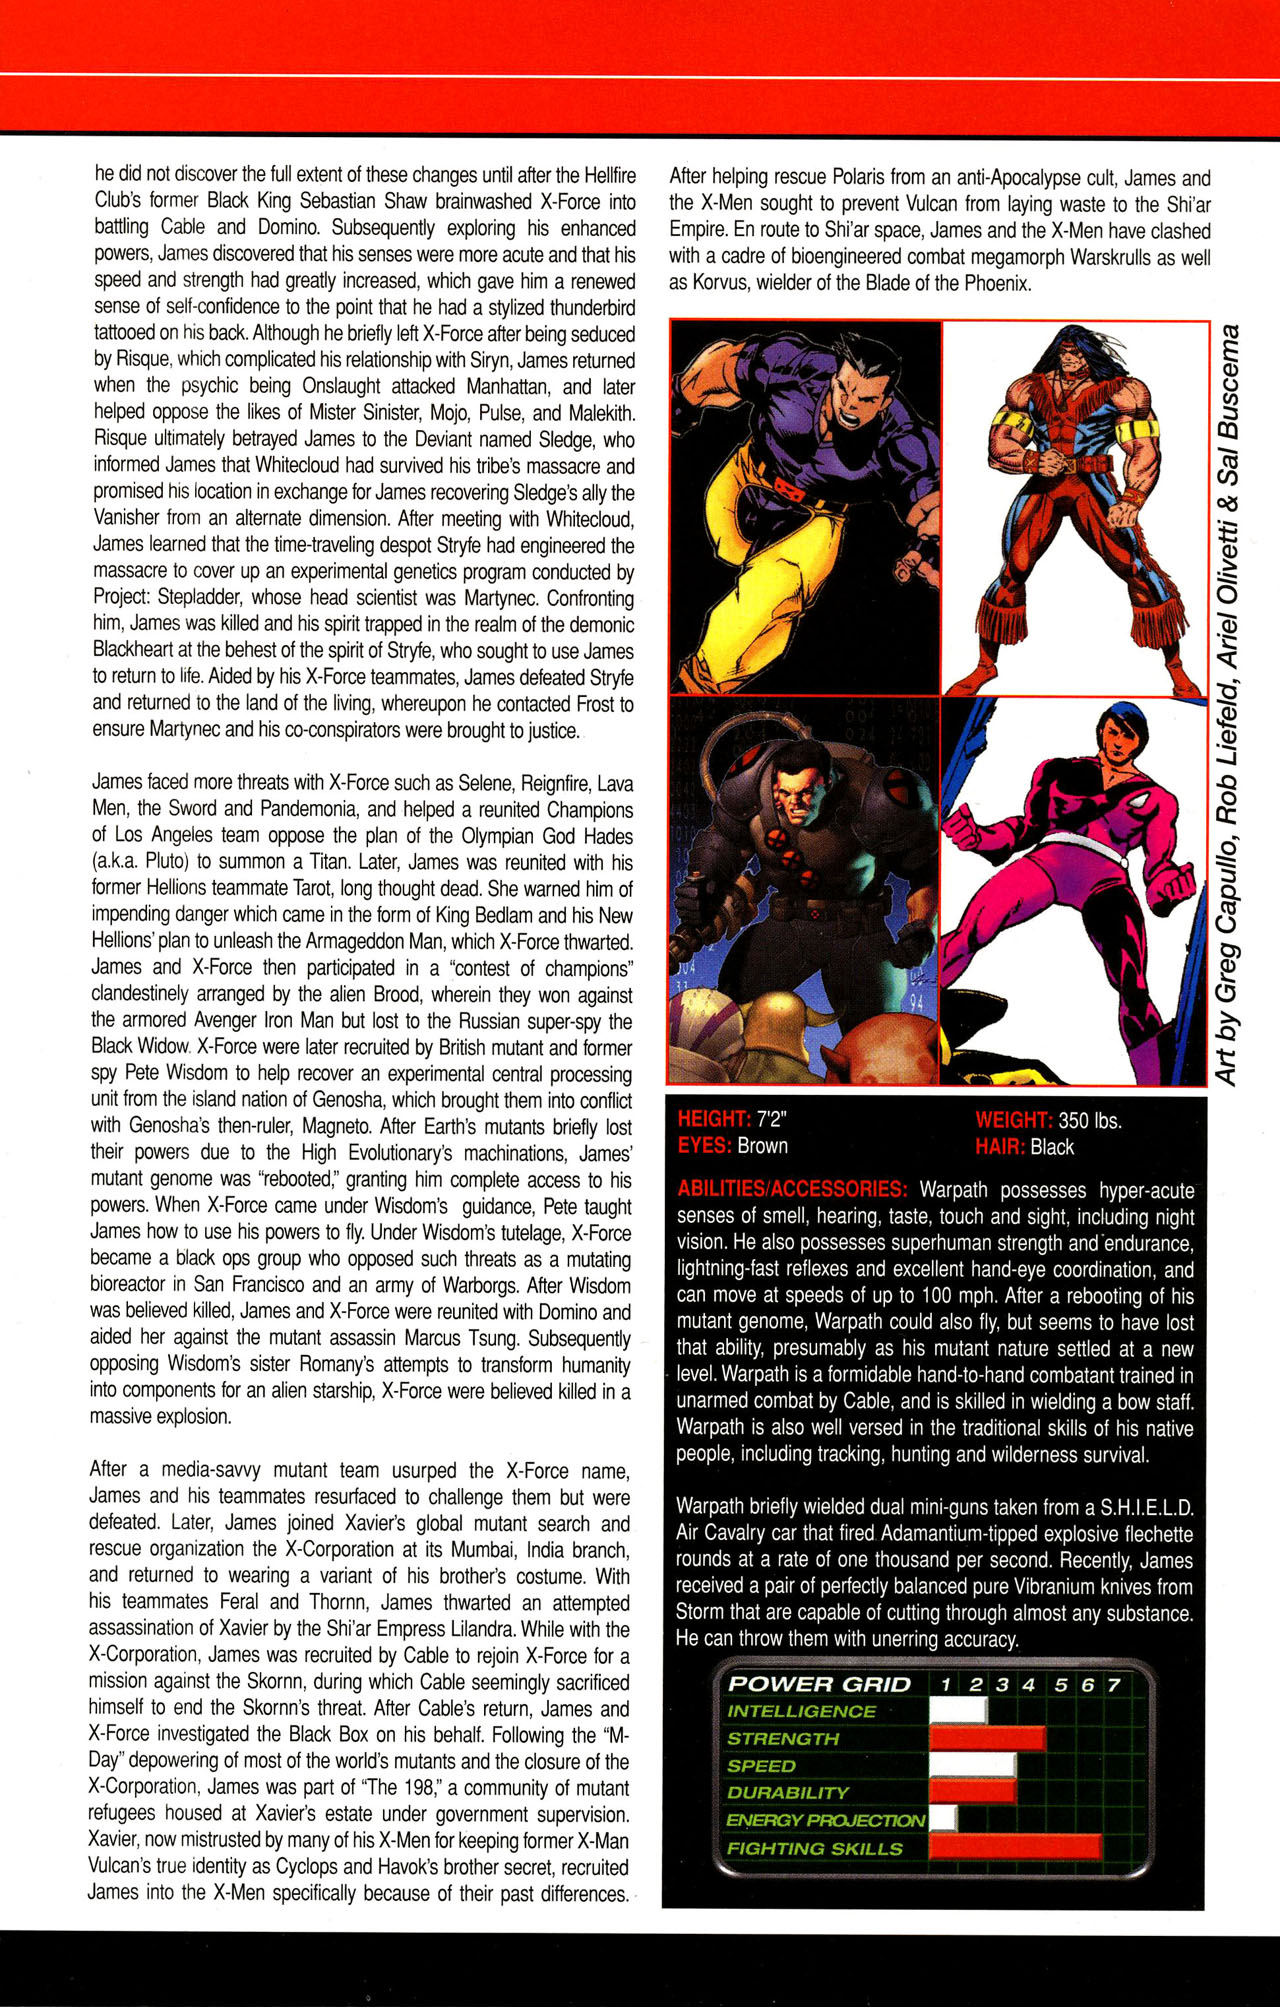 Read online All-New Official Handbook of the Marvel Universe A to Z comic -  Issue #12 - 32